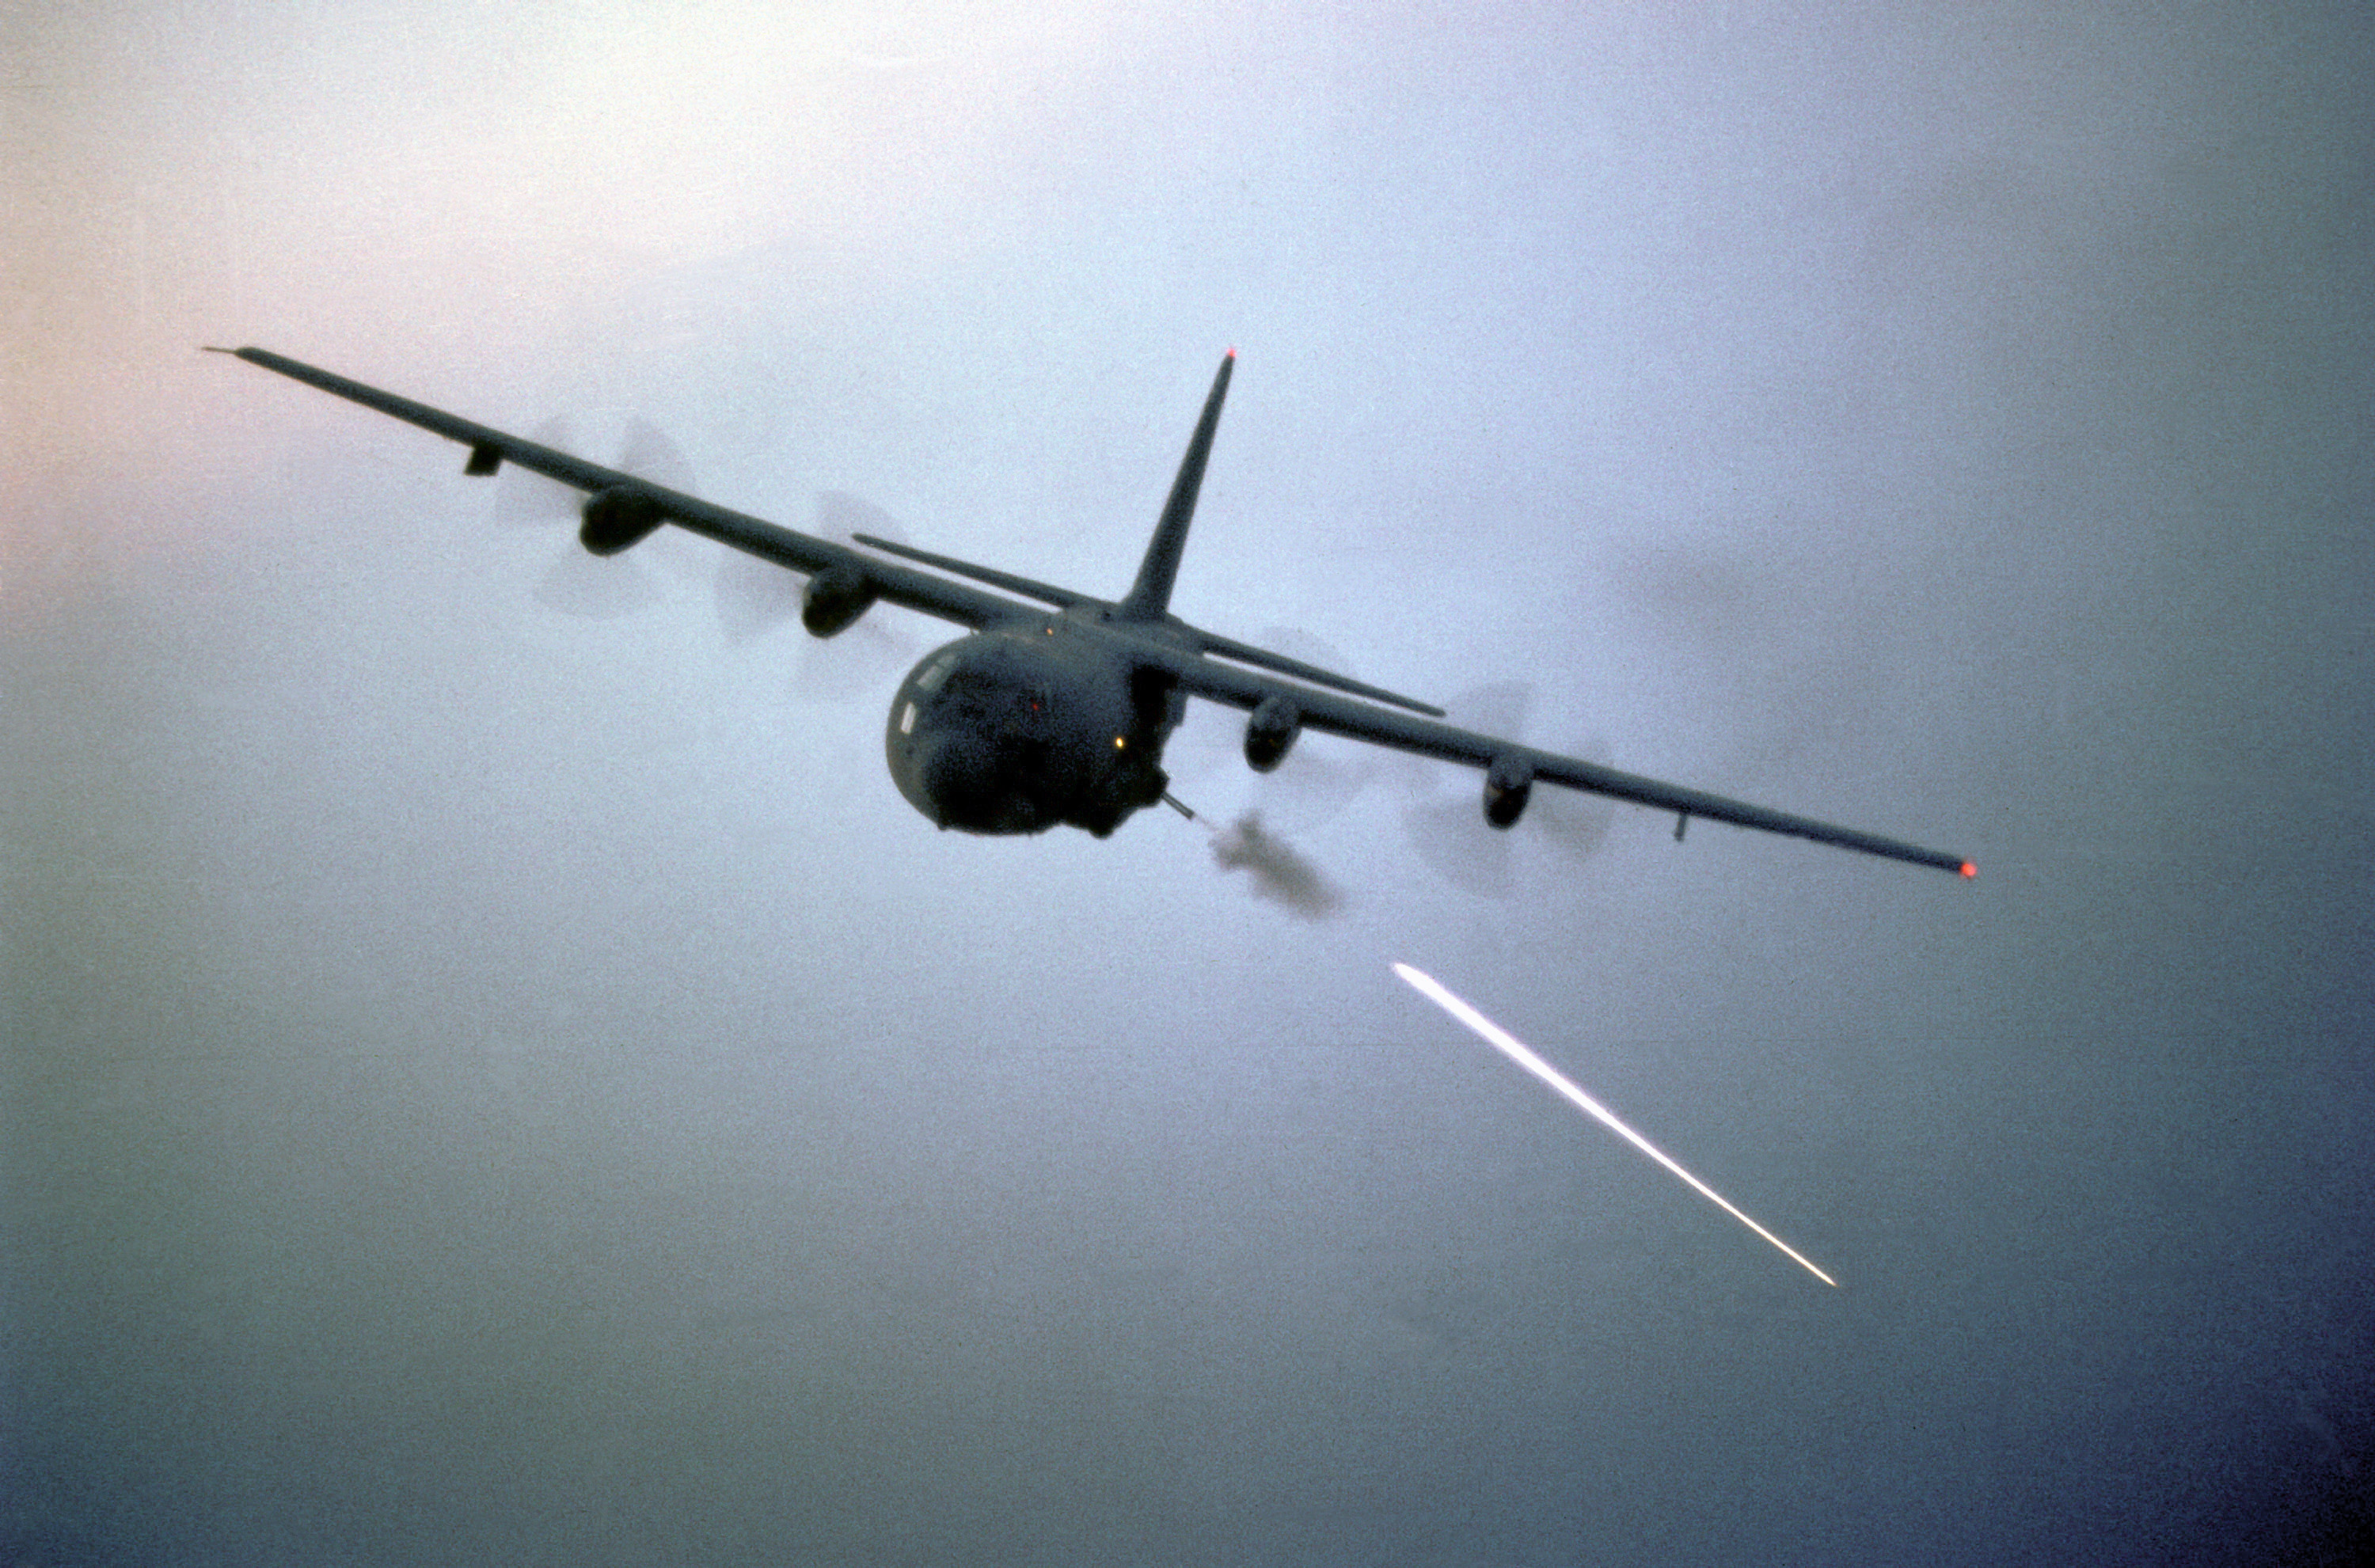 Laser Guns And Air-Launched Drones Coming To The AC-130 According To Lt. Gen. Brad Heithold Featured